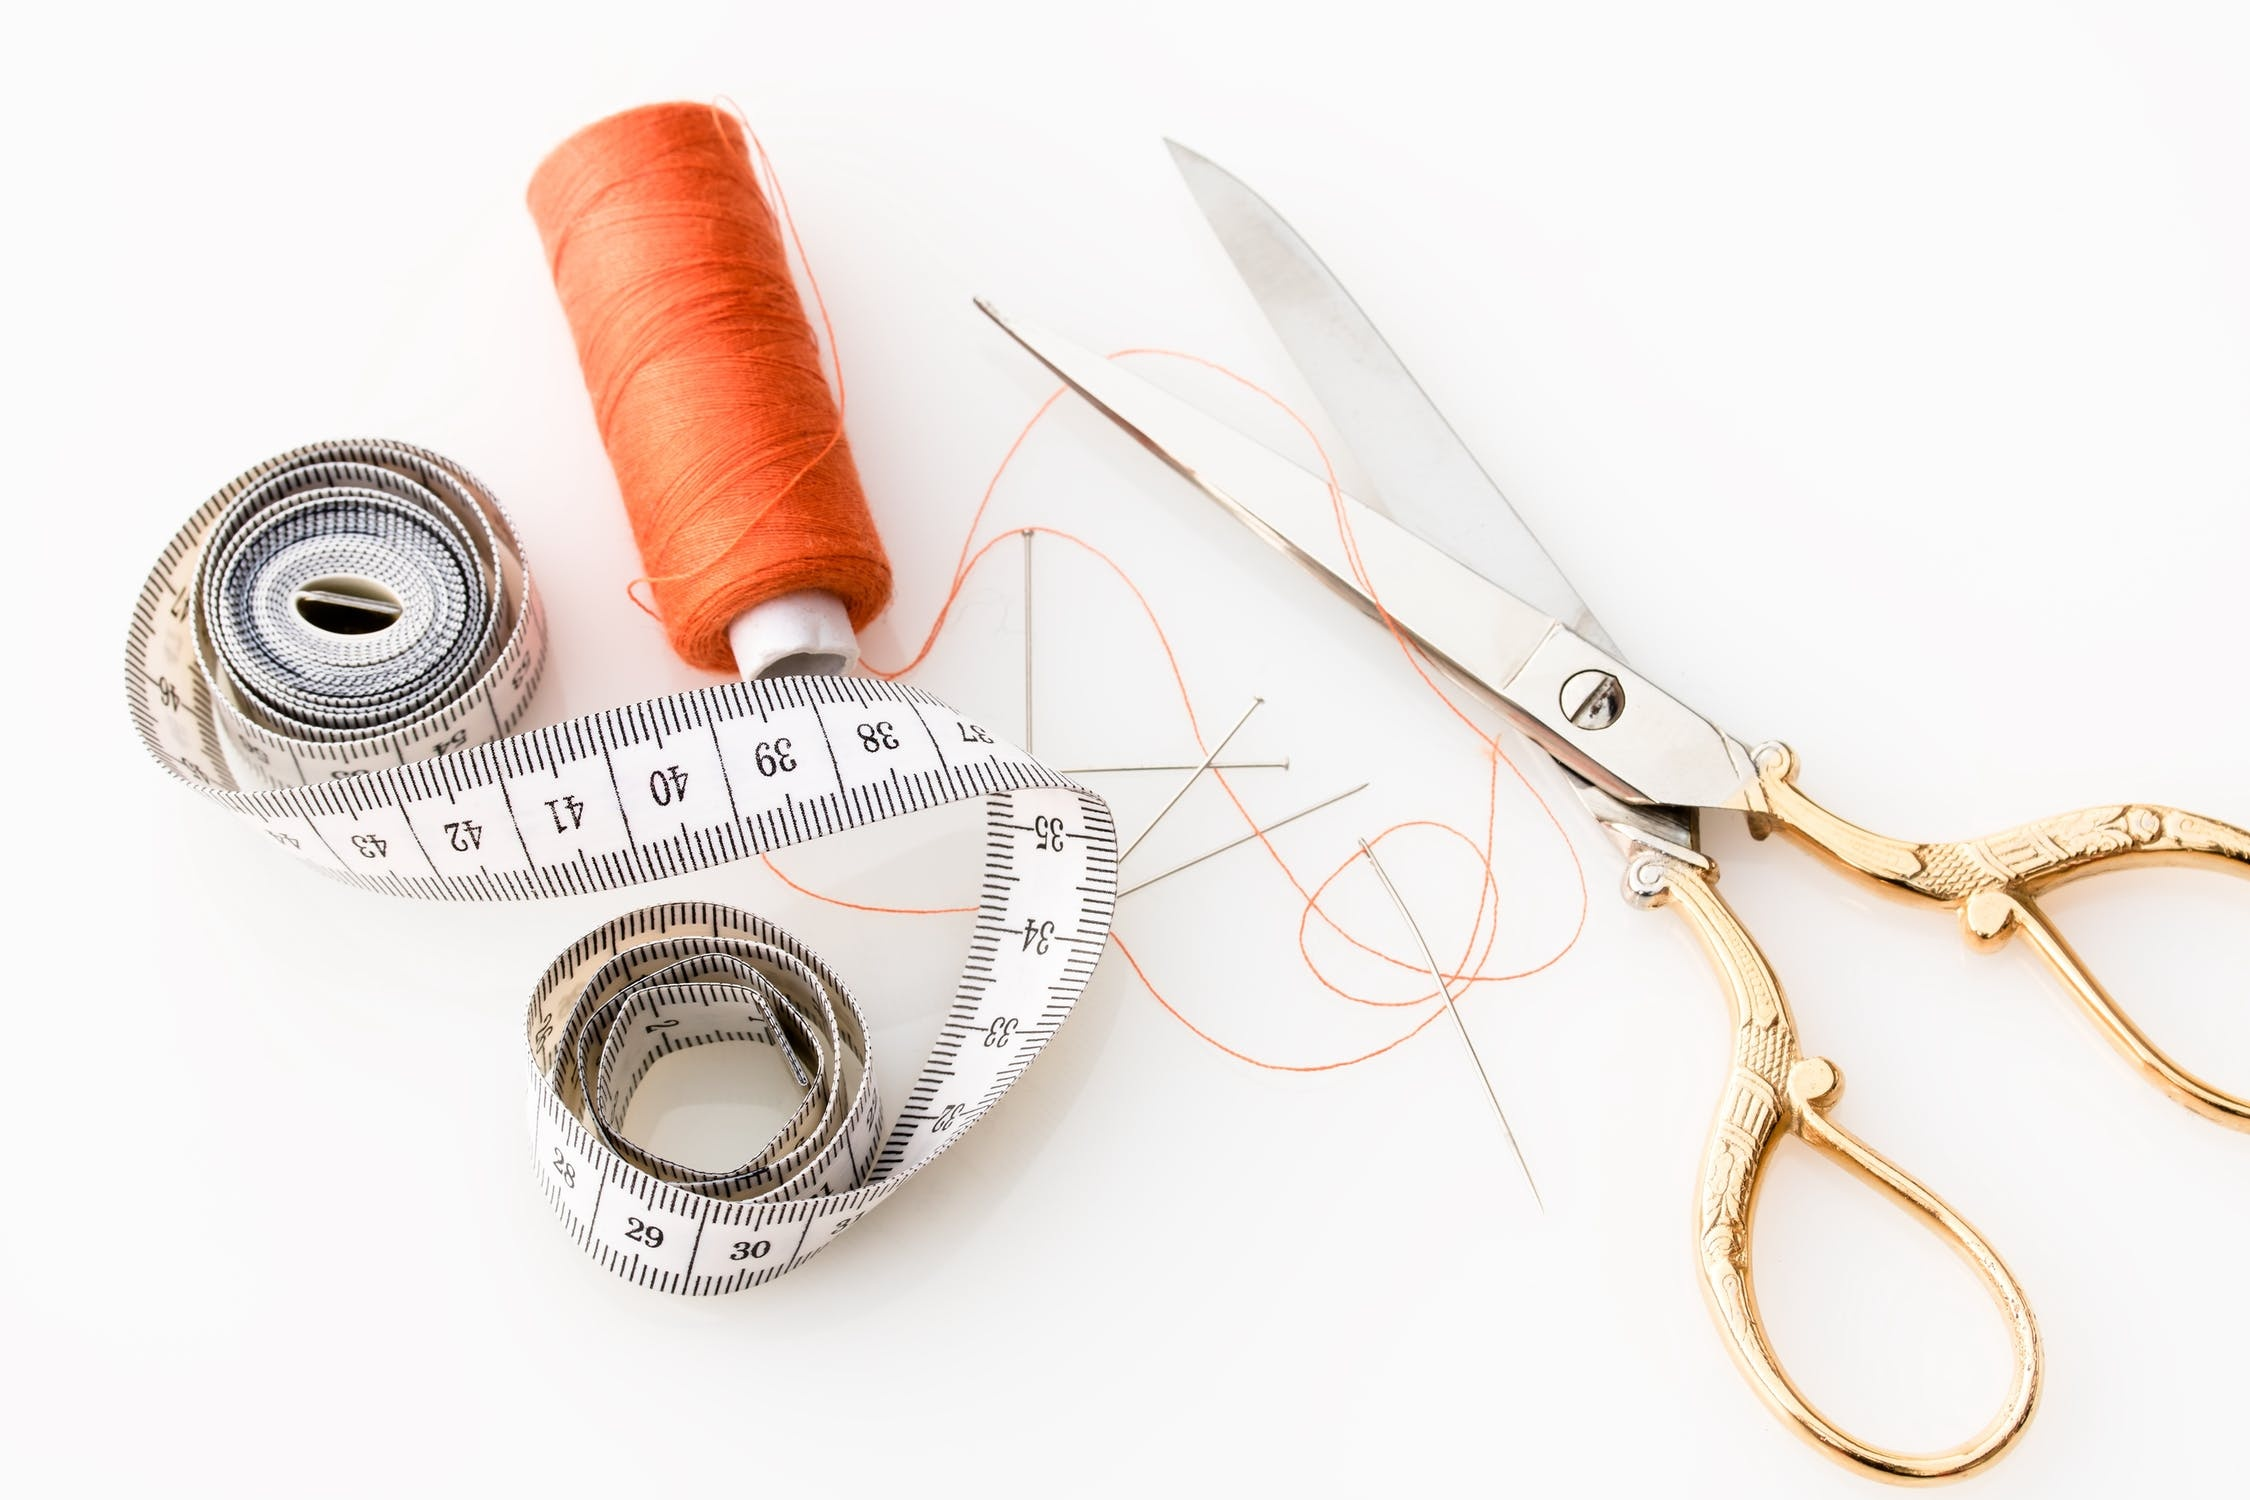 Well Established Sewing and Alterations Business in Upscale OC